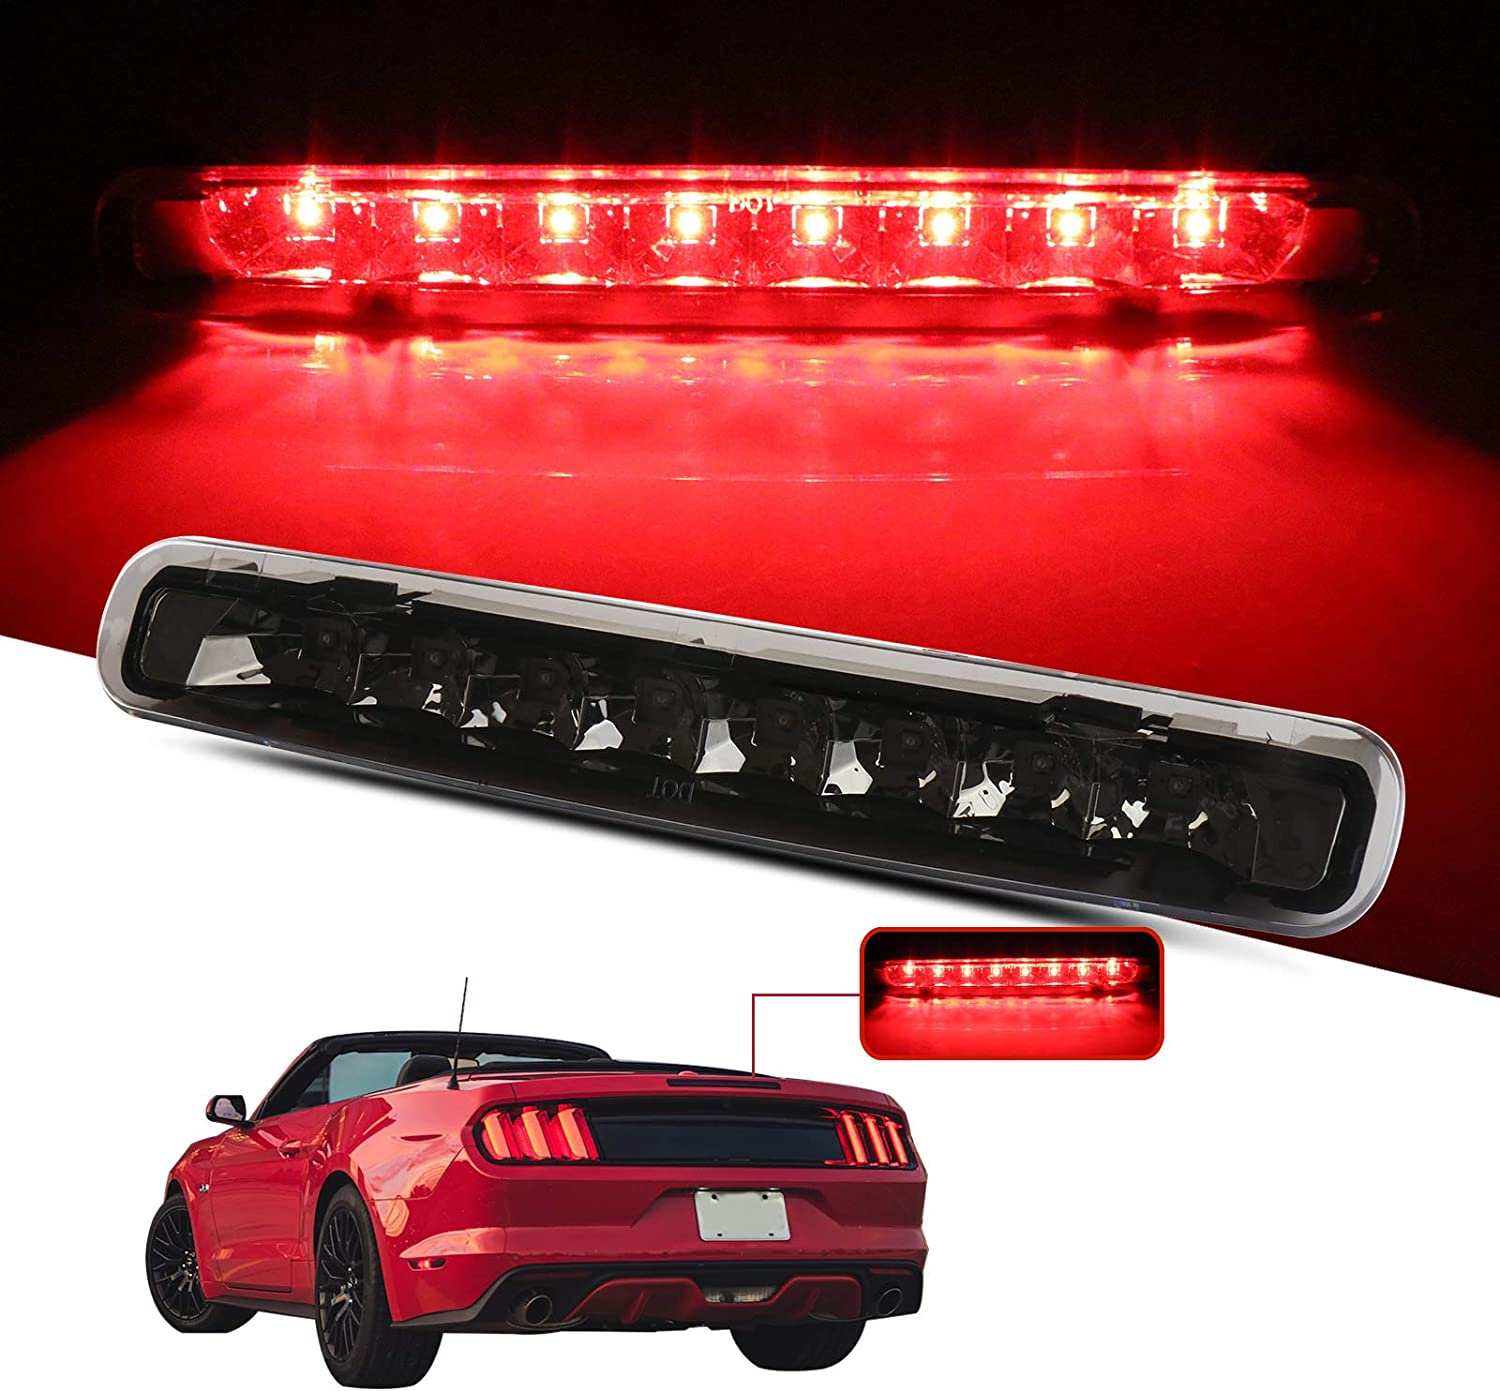 LED 3rd Brake Lights Cargo Lamp Assembly Automotive Tail Lights Clear Lens Fit for 2005-2009 Ford Mustang Replace 923238 6R3Z13A613A